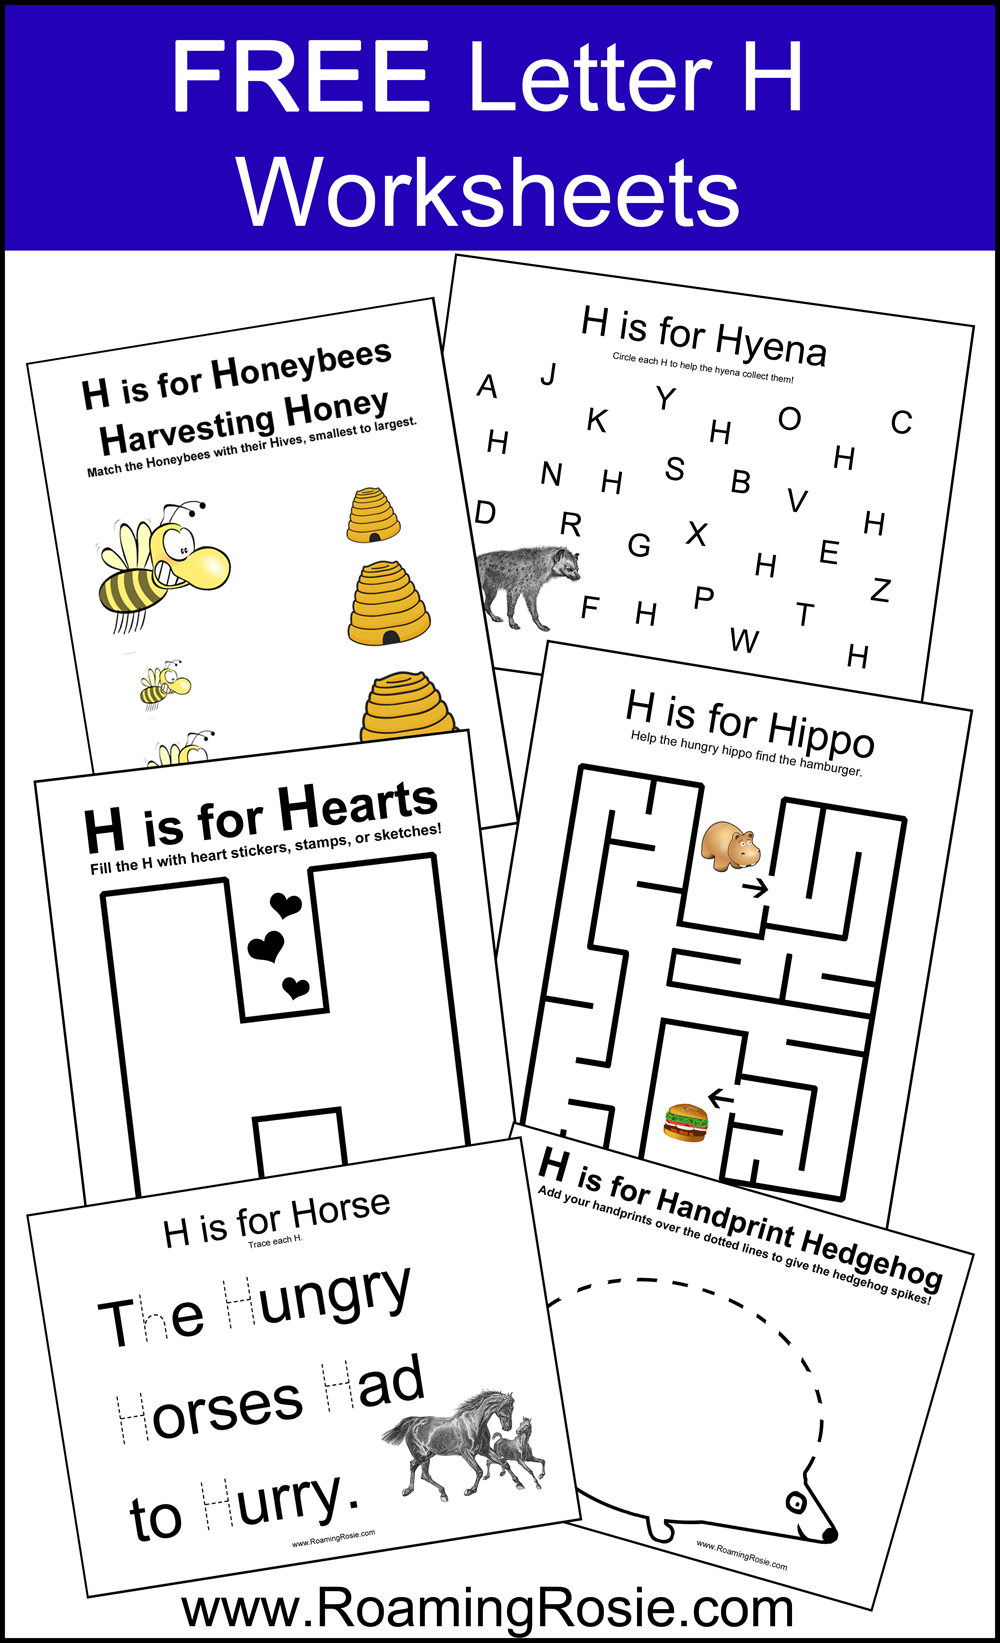 image regarding Printable Letter H identify Letter H: Cost-free Alphabet Worksheets for Youngsters Roaming Rosie